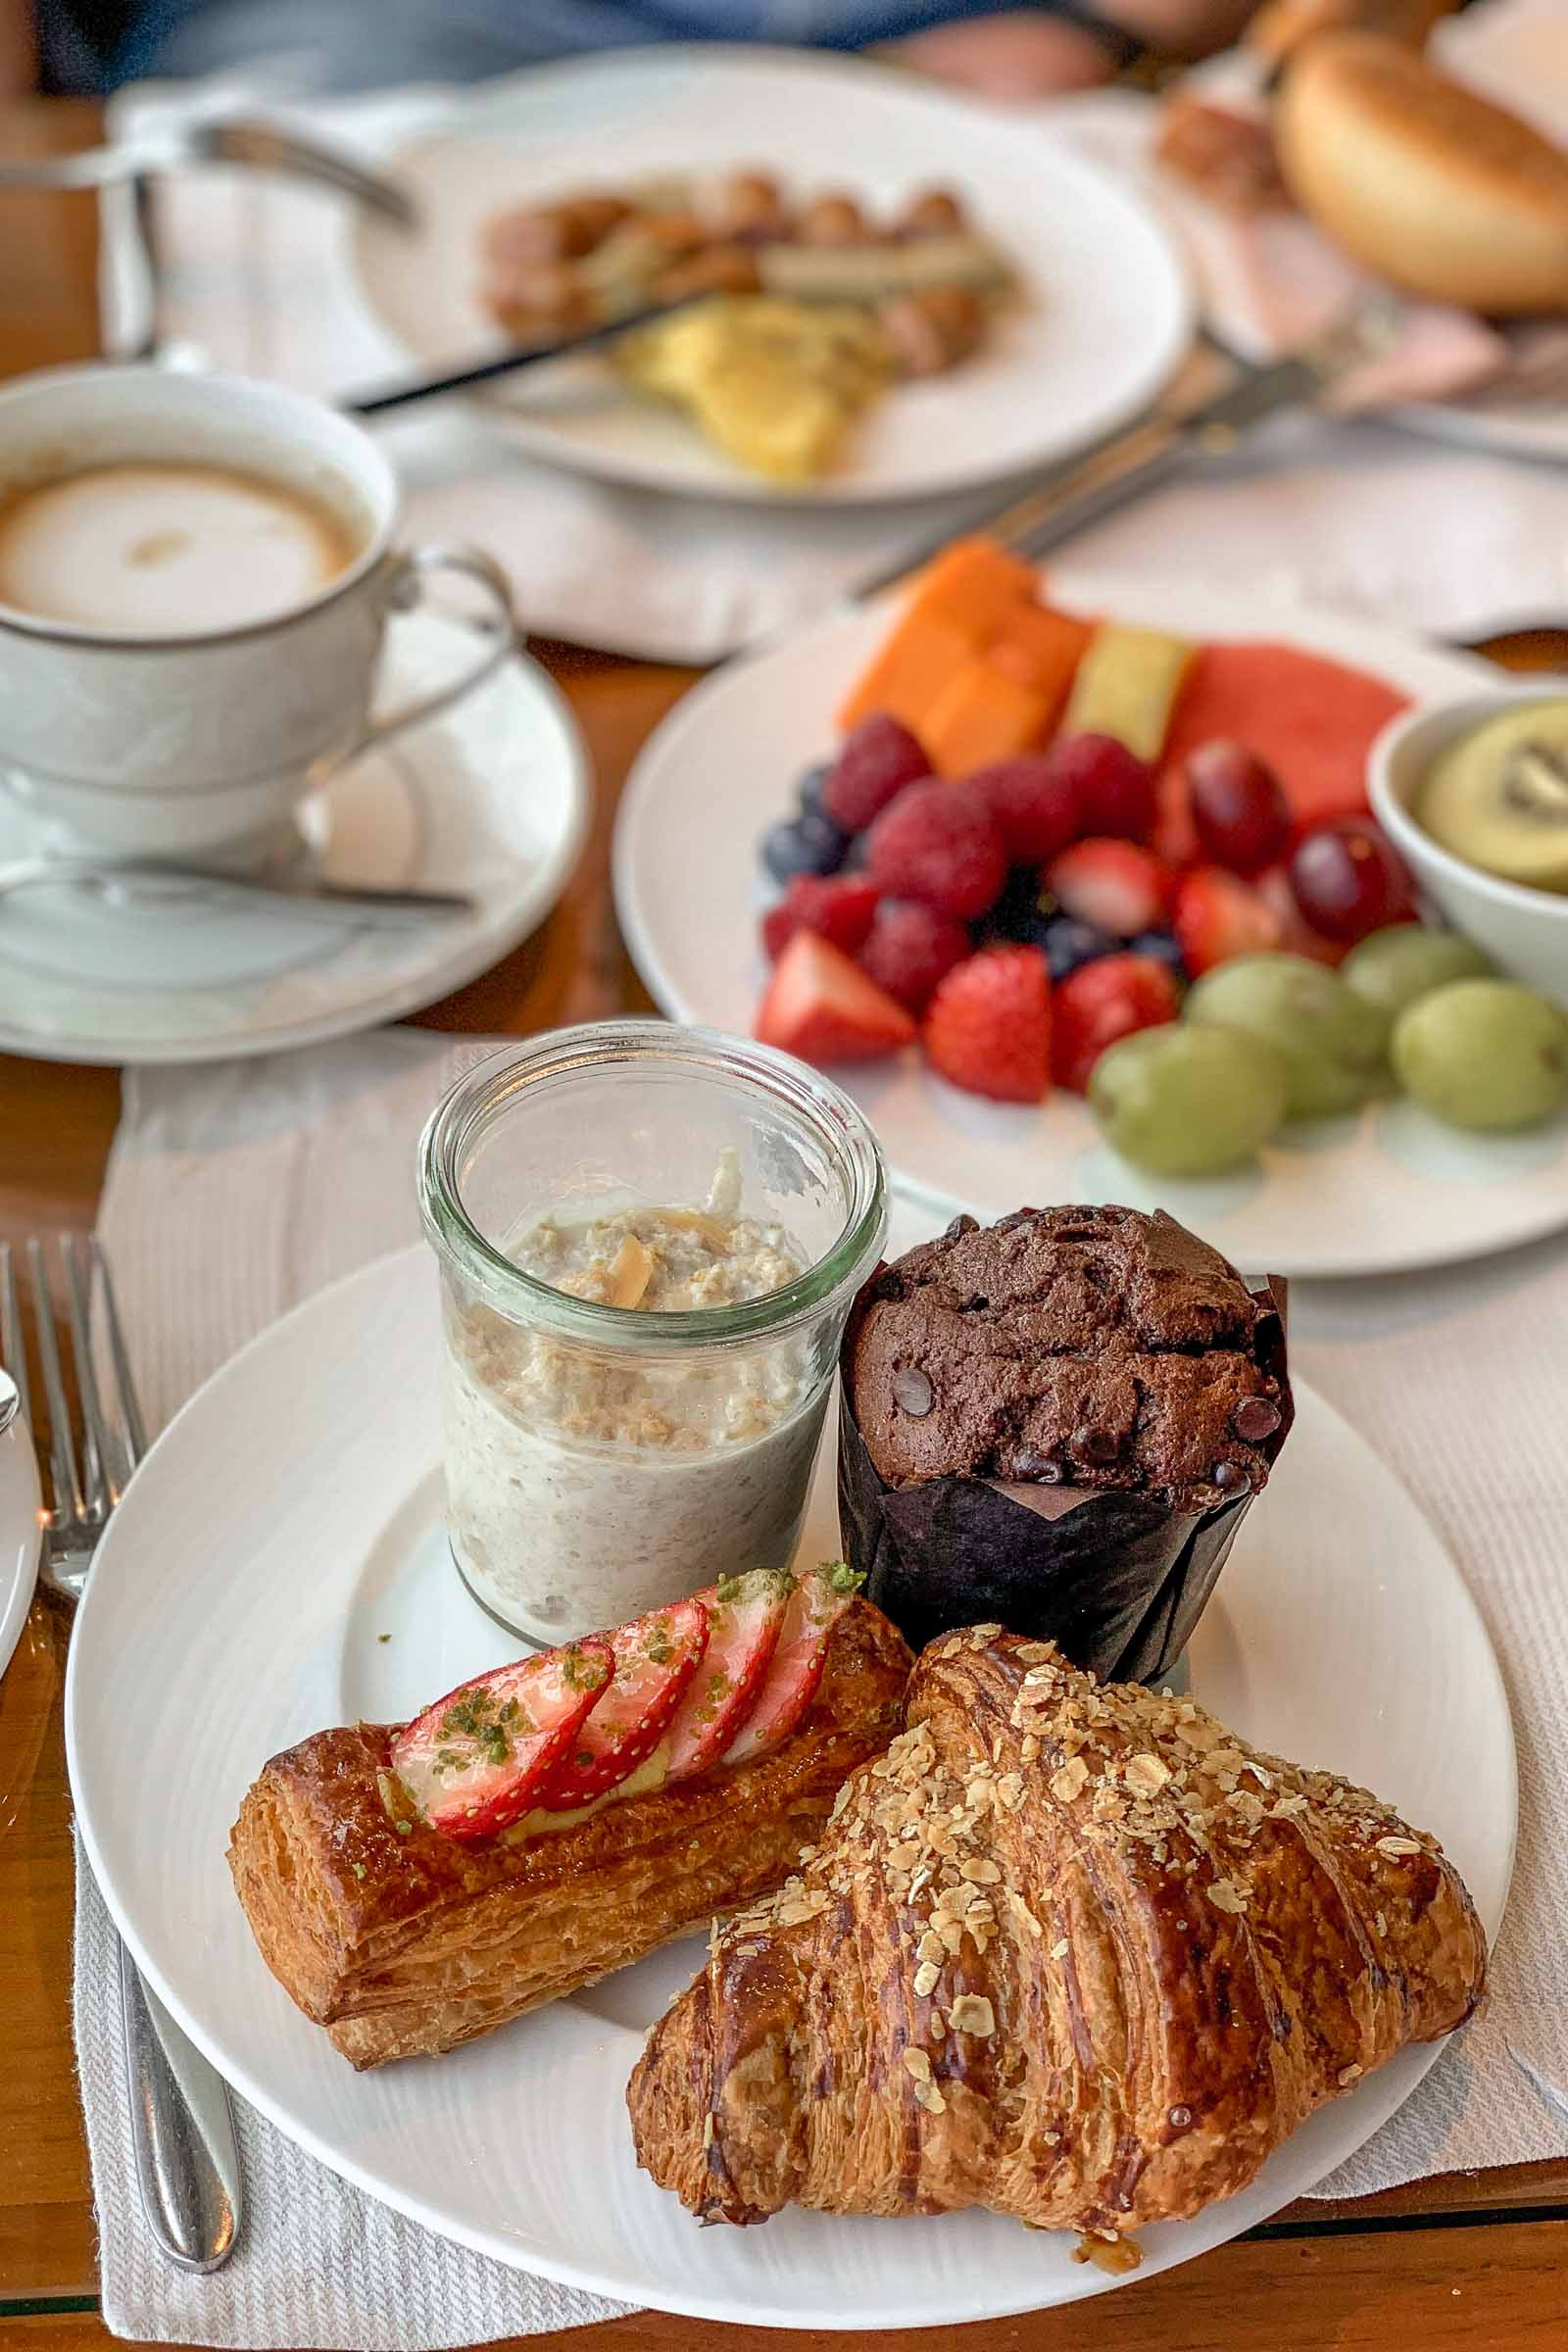 Breakfast with croissant, danish pastry, muffin, fruits and coffee